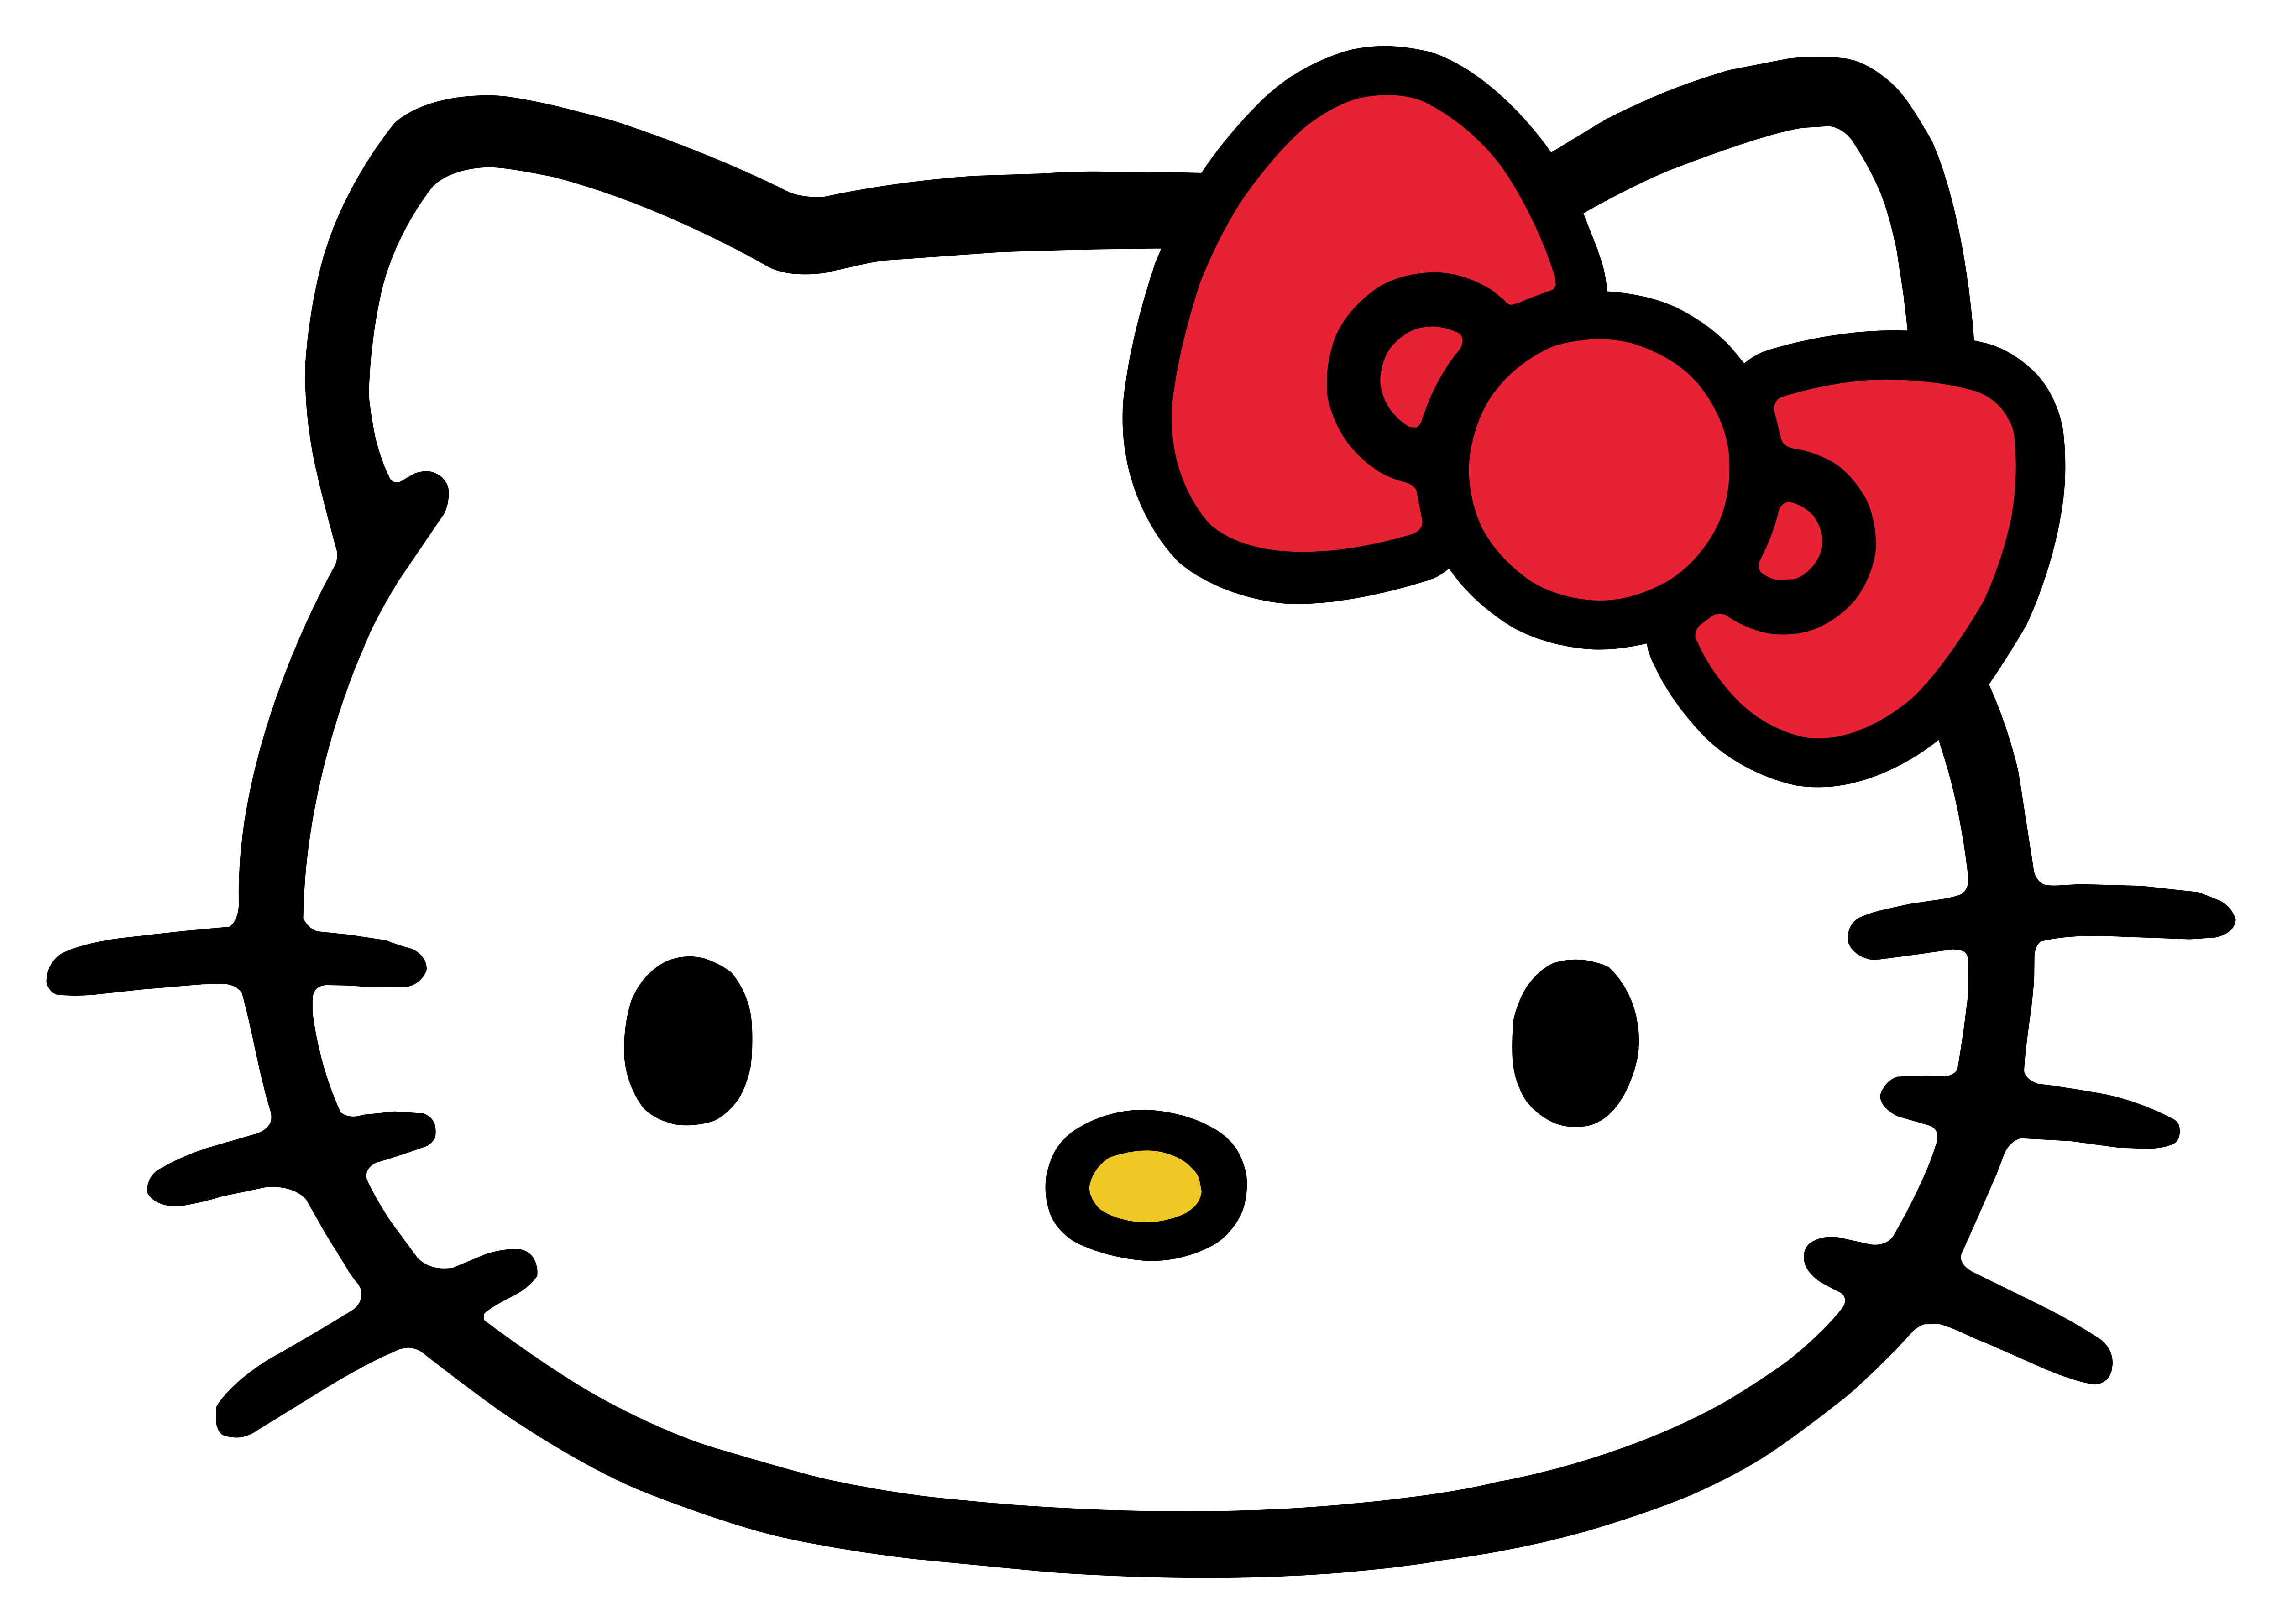 Kitty transparent logo. Hello logos download muzzle